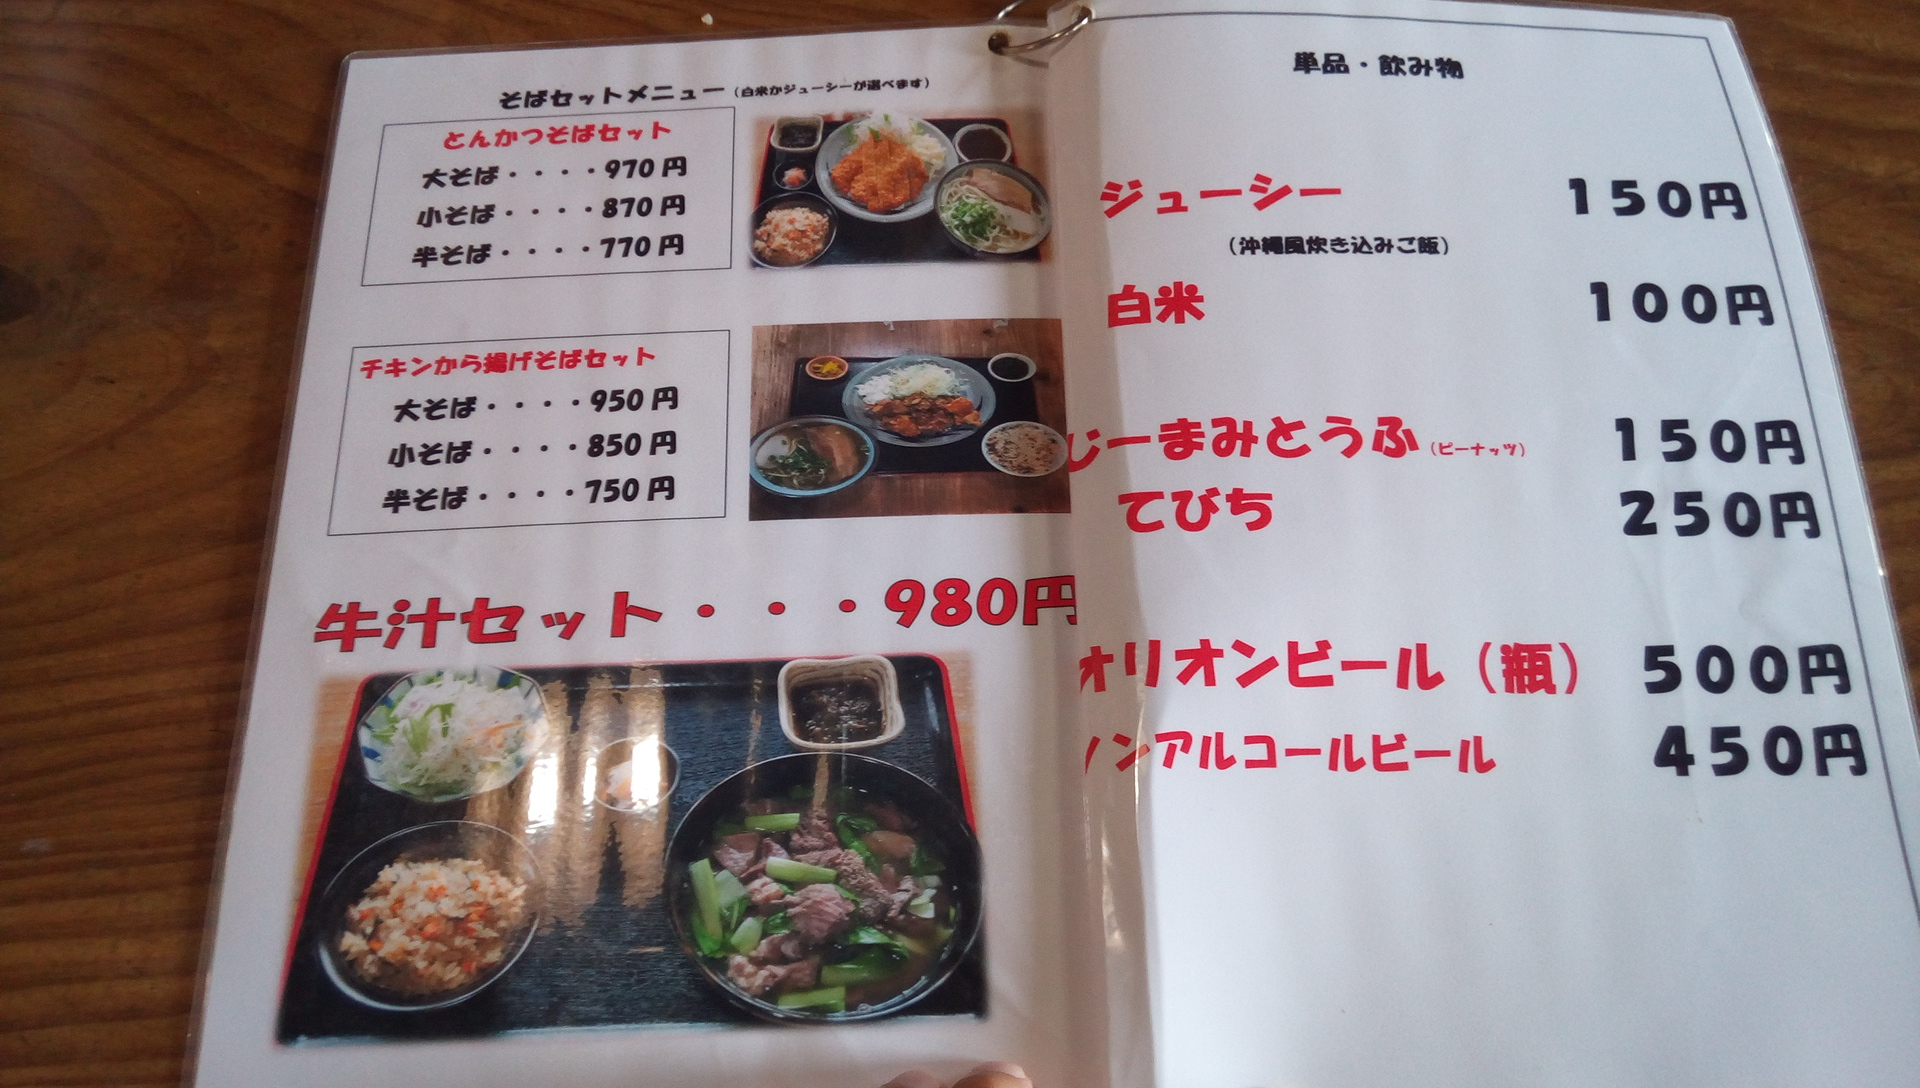 the menu of Sobaya Kirabaru 2